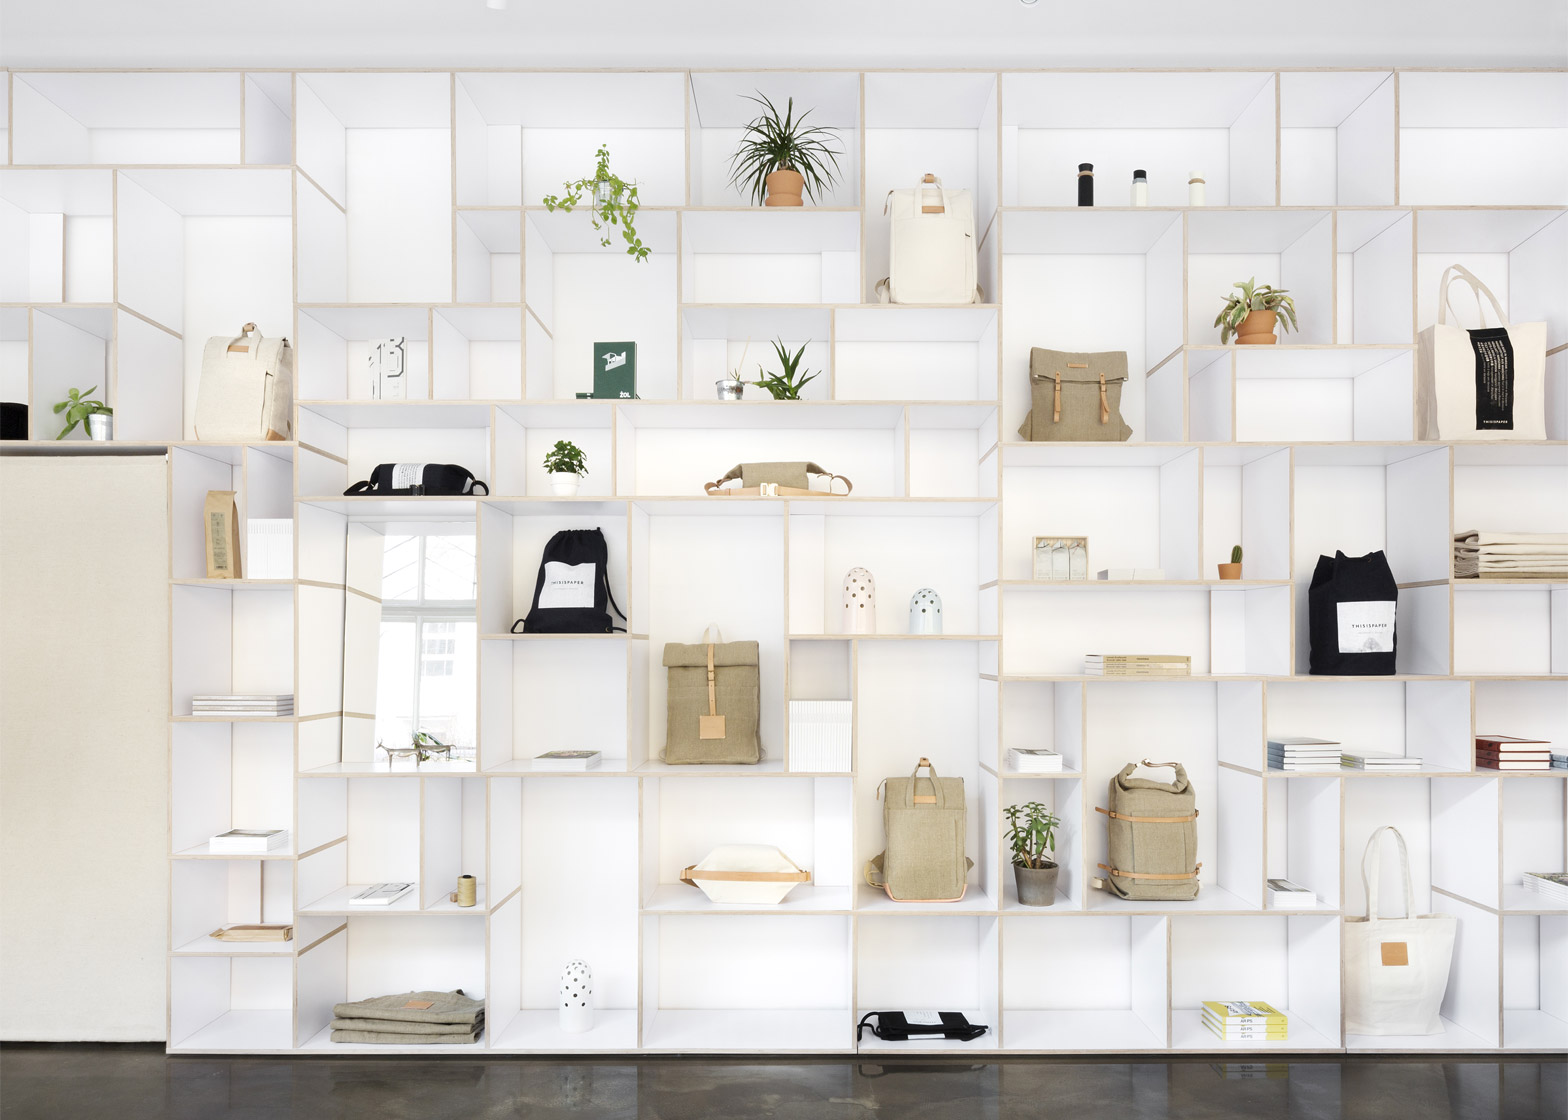 4 Of 4; Thisispaper Shop In Warsaw By Thisispaper Studio